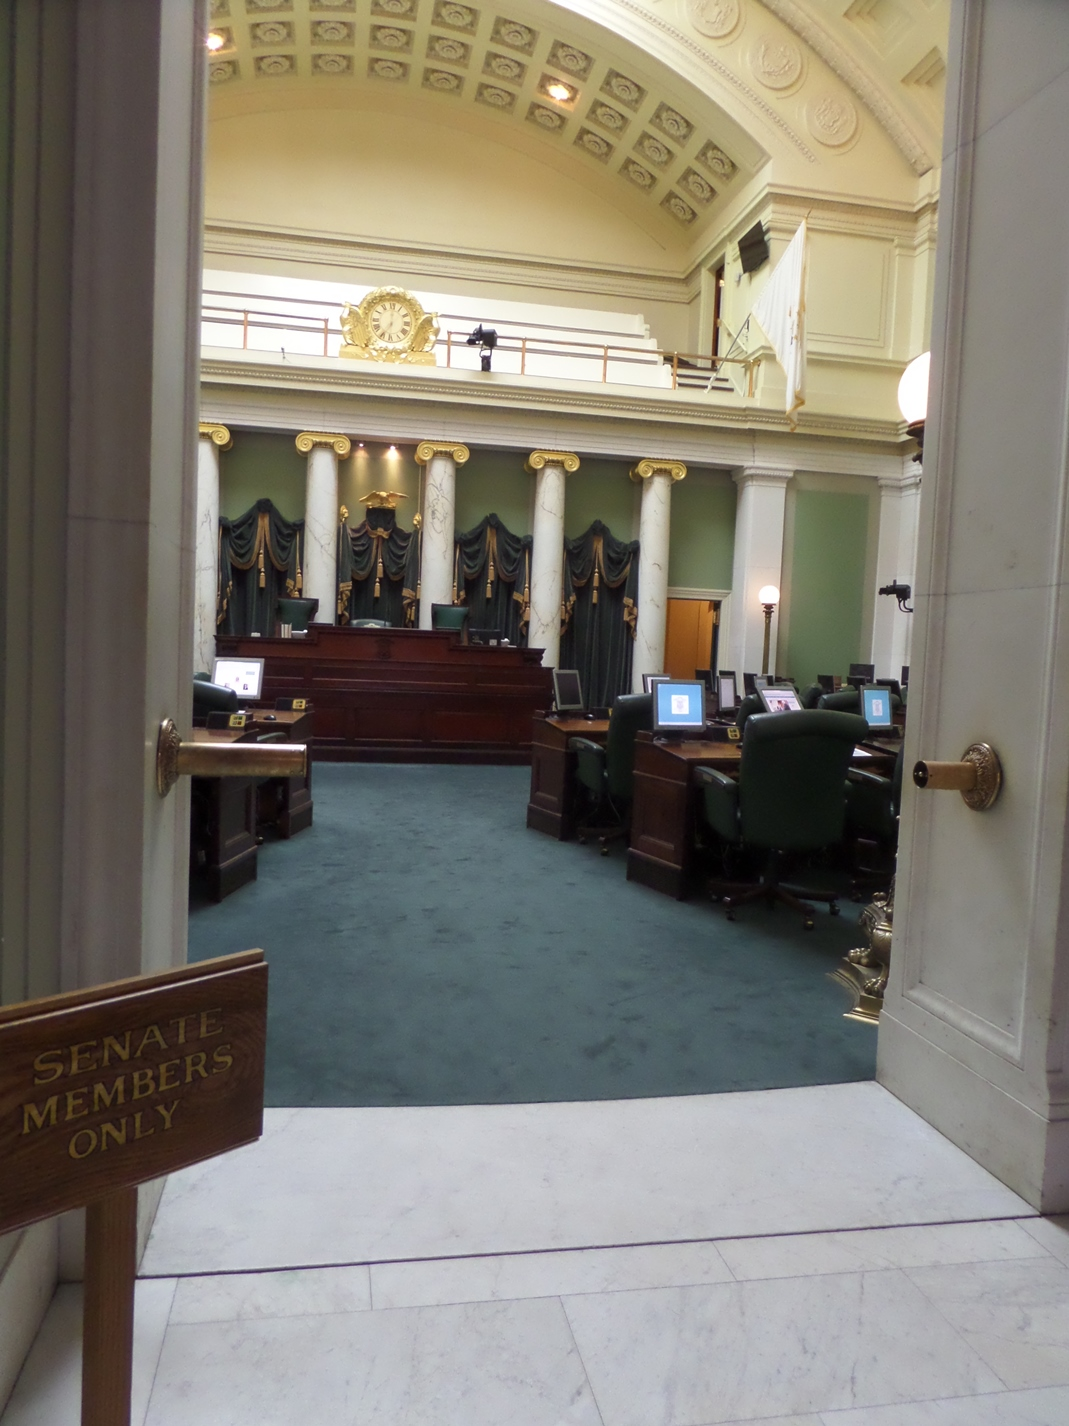 You can see how small the Senate Chamber is. It's a small state.